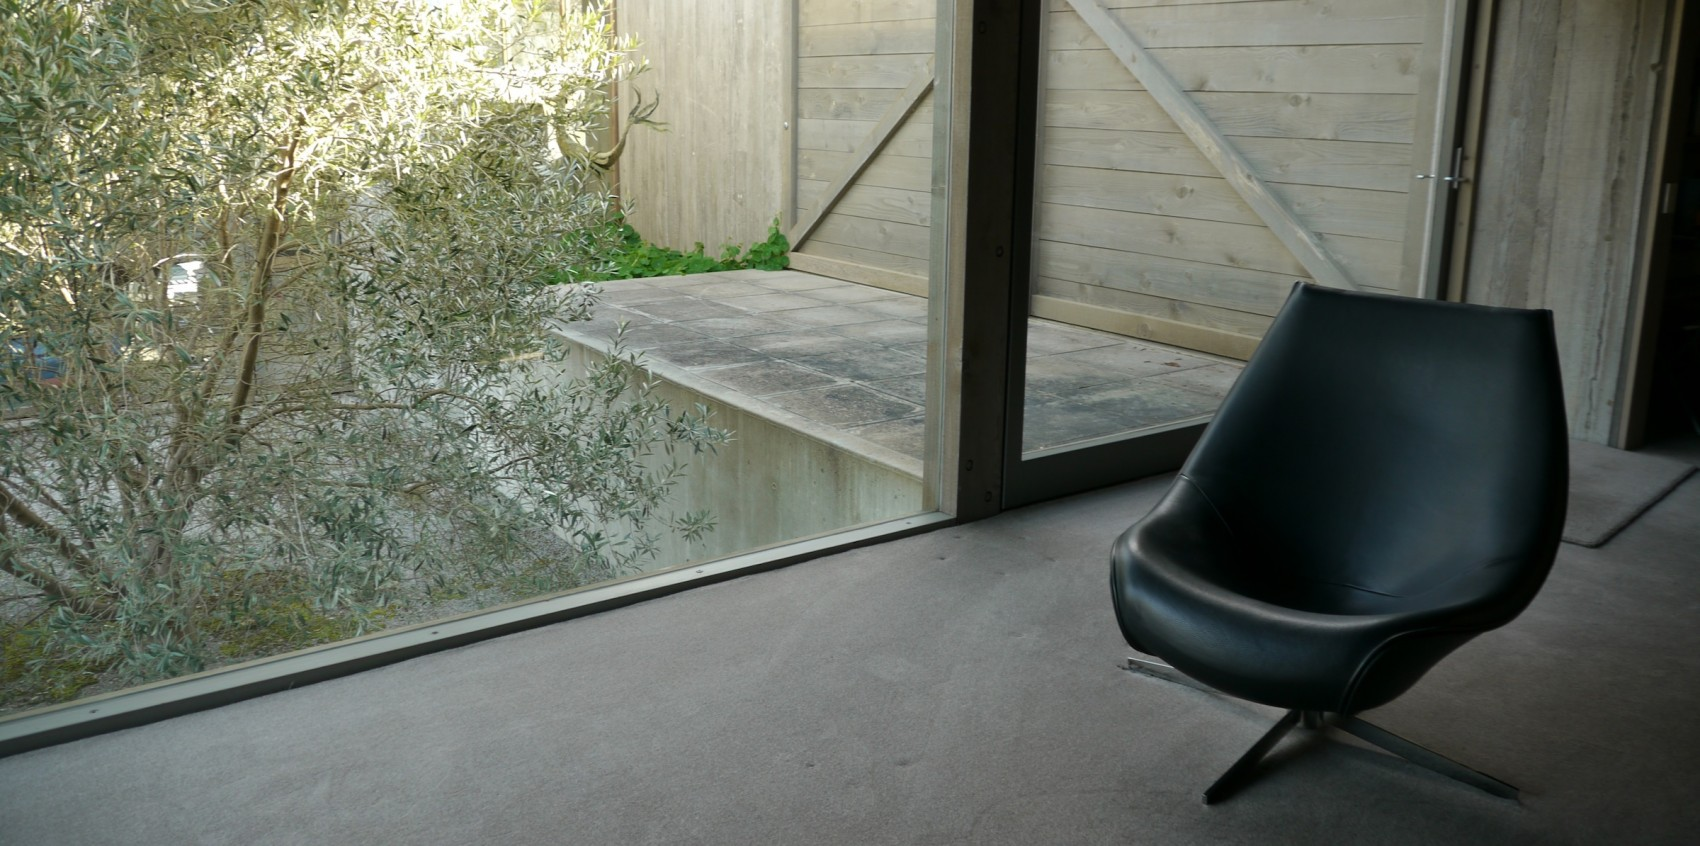 A black chair on a grey floor next to a window where tree foliage is visible